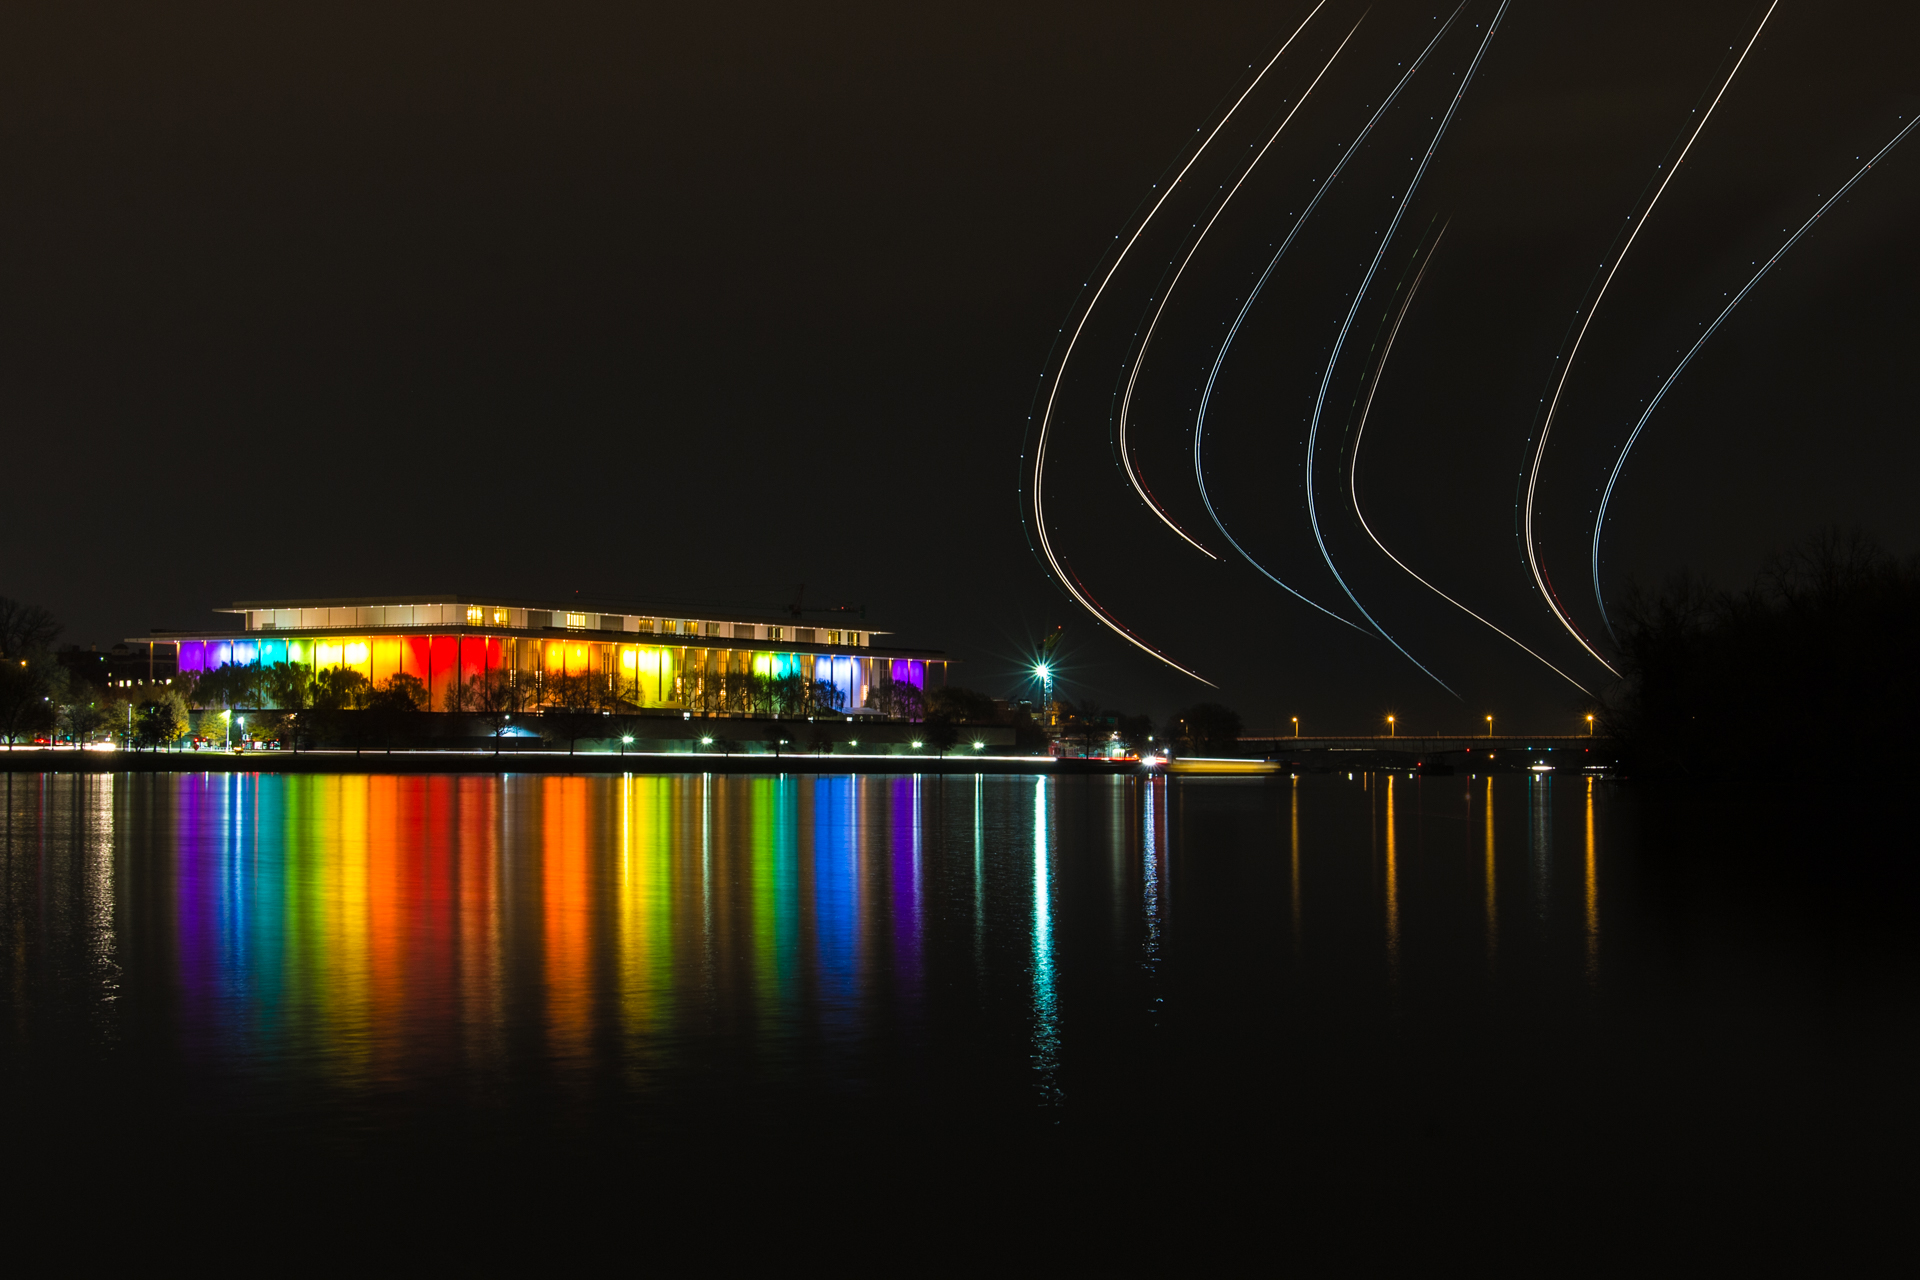 In the Rainbow of Honor – Kennedy Center lit up like a rainbow for the honors celebration{&nbsp;}(Image: Zack Lewkowicz)<p></p>